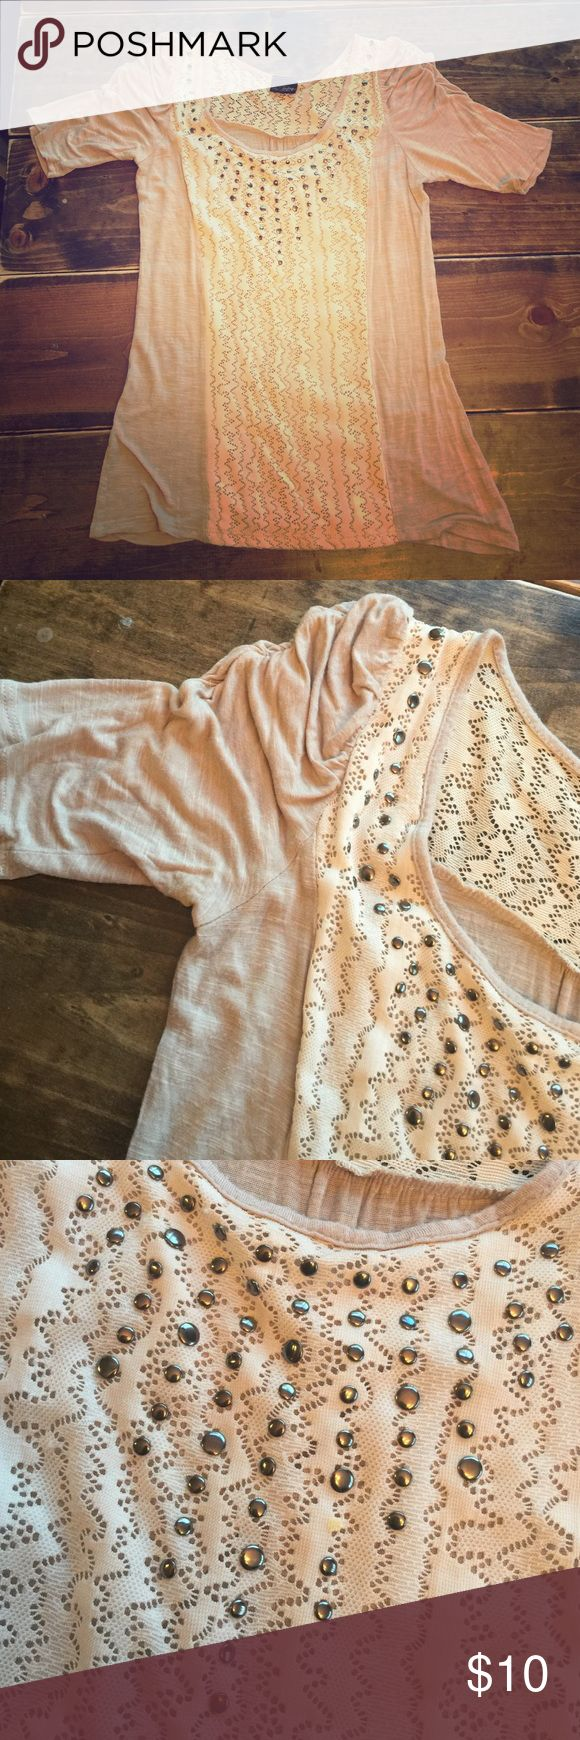 Medium Daytrip top. Cream women's top with lace and stud details. Daytrip Tops Blouses